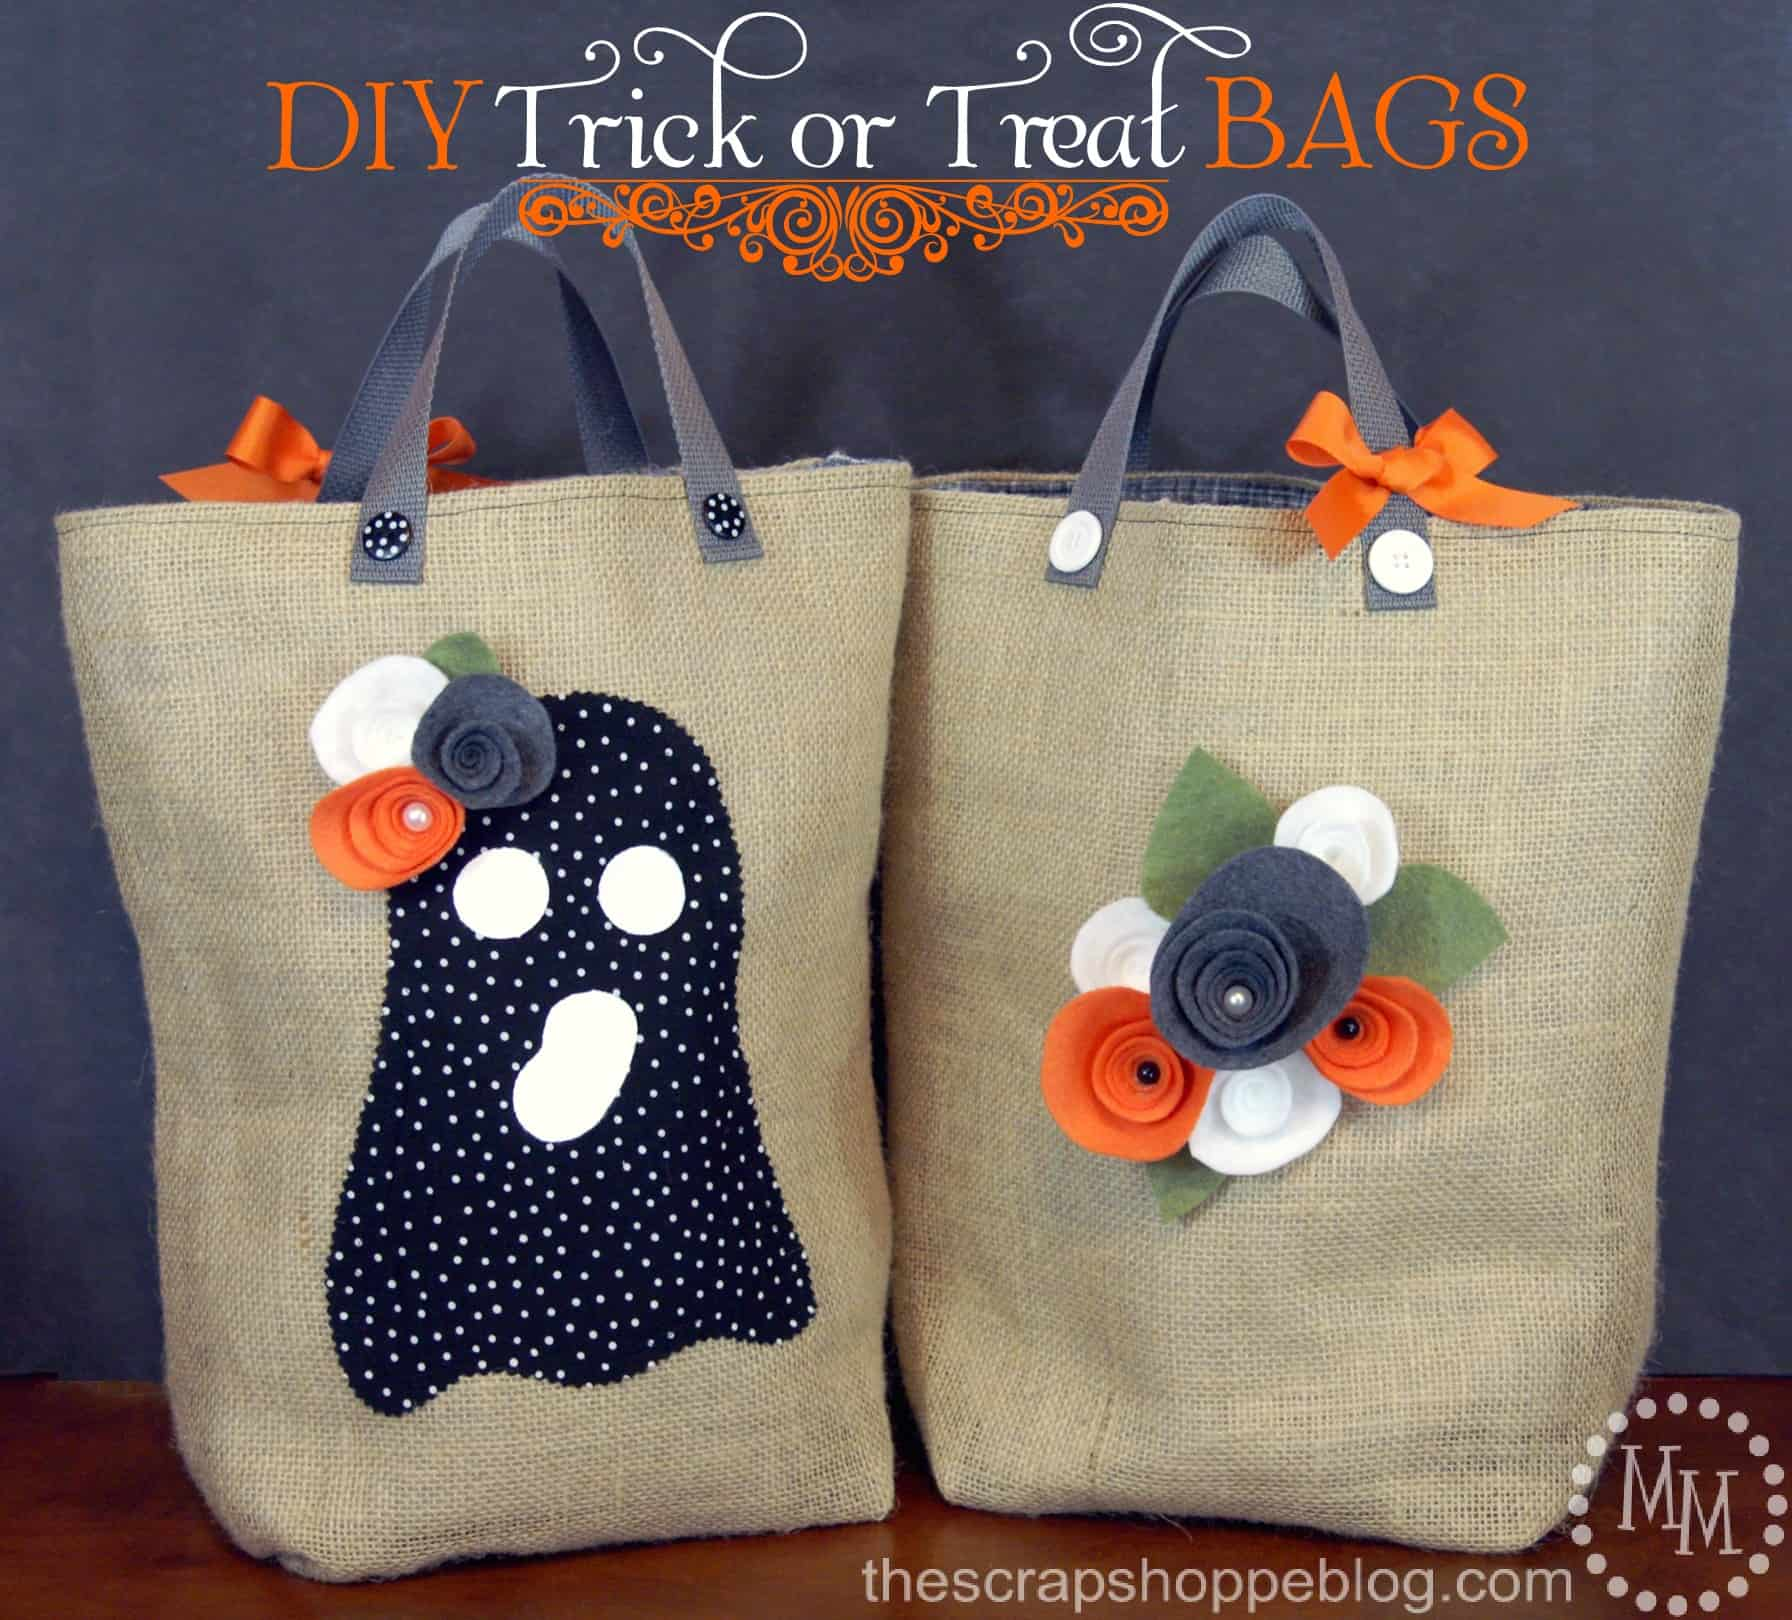 Burlap and felt trick or treat bags